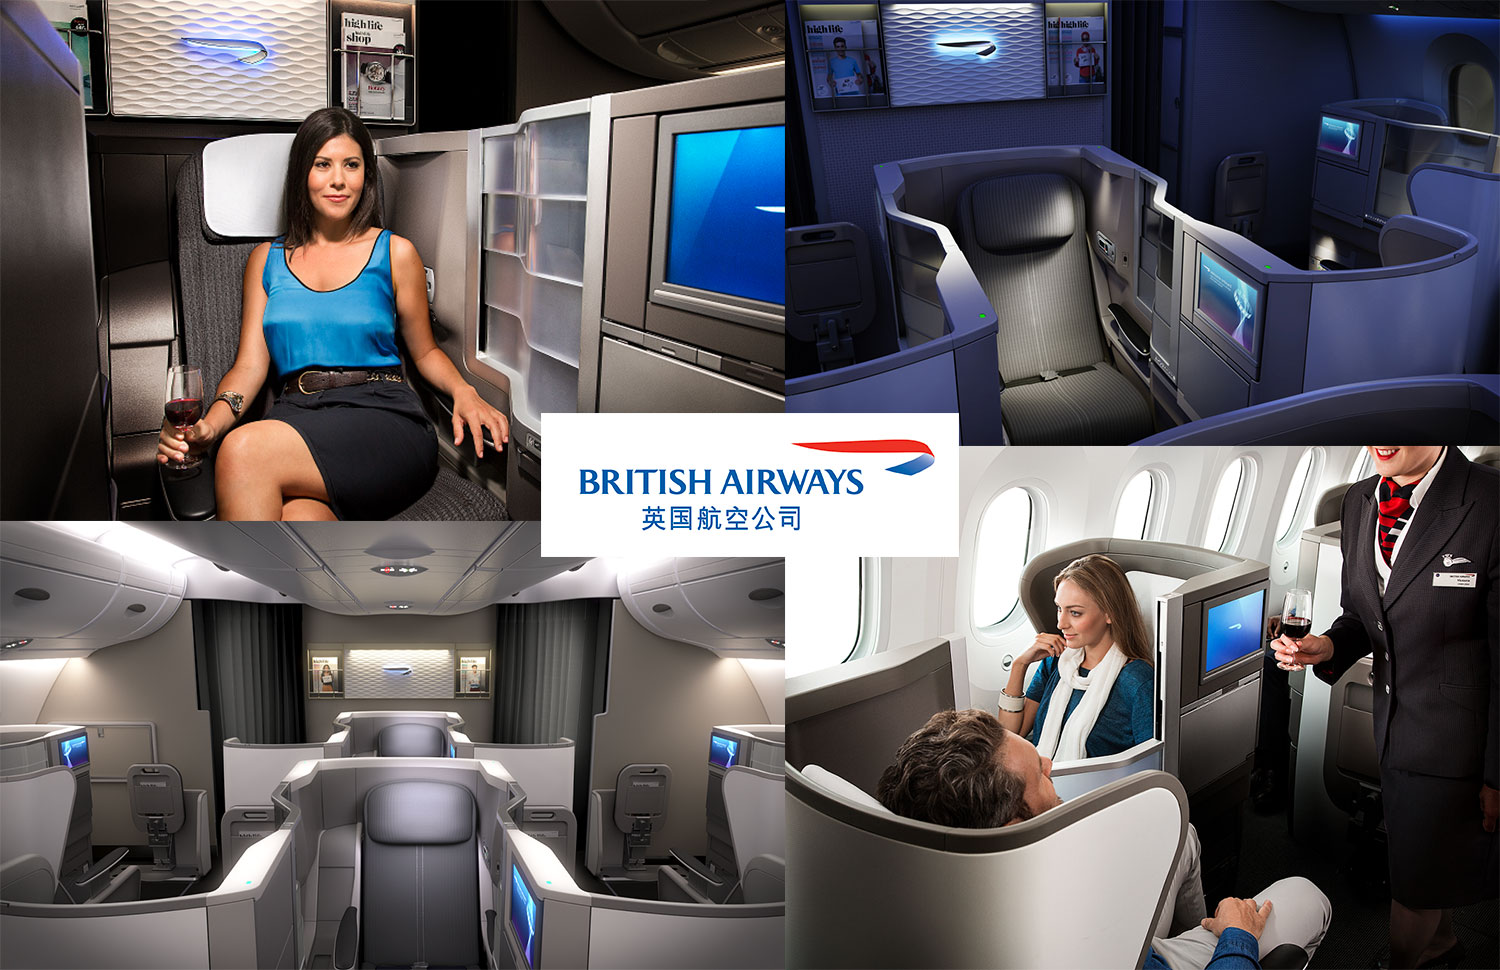 british airways montage